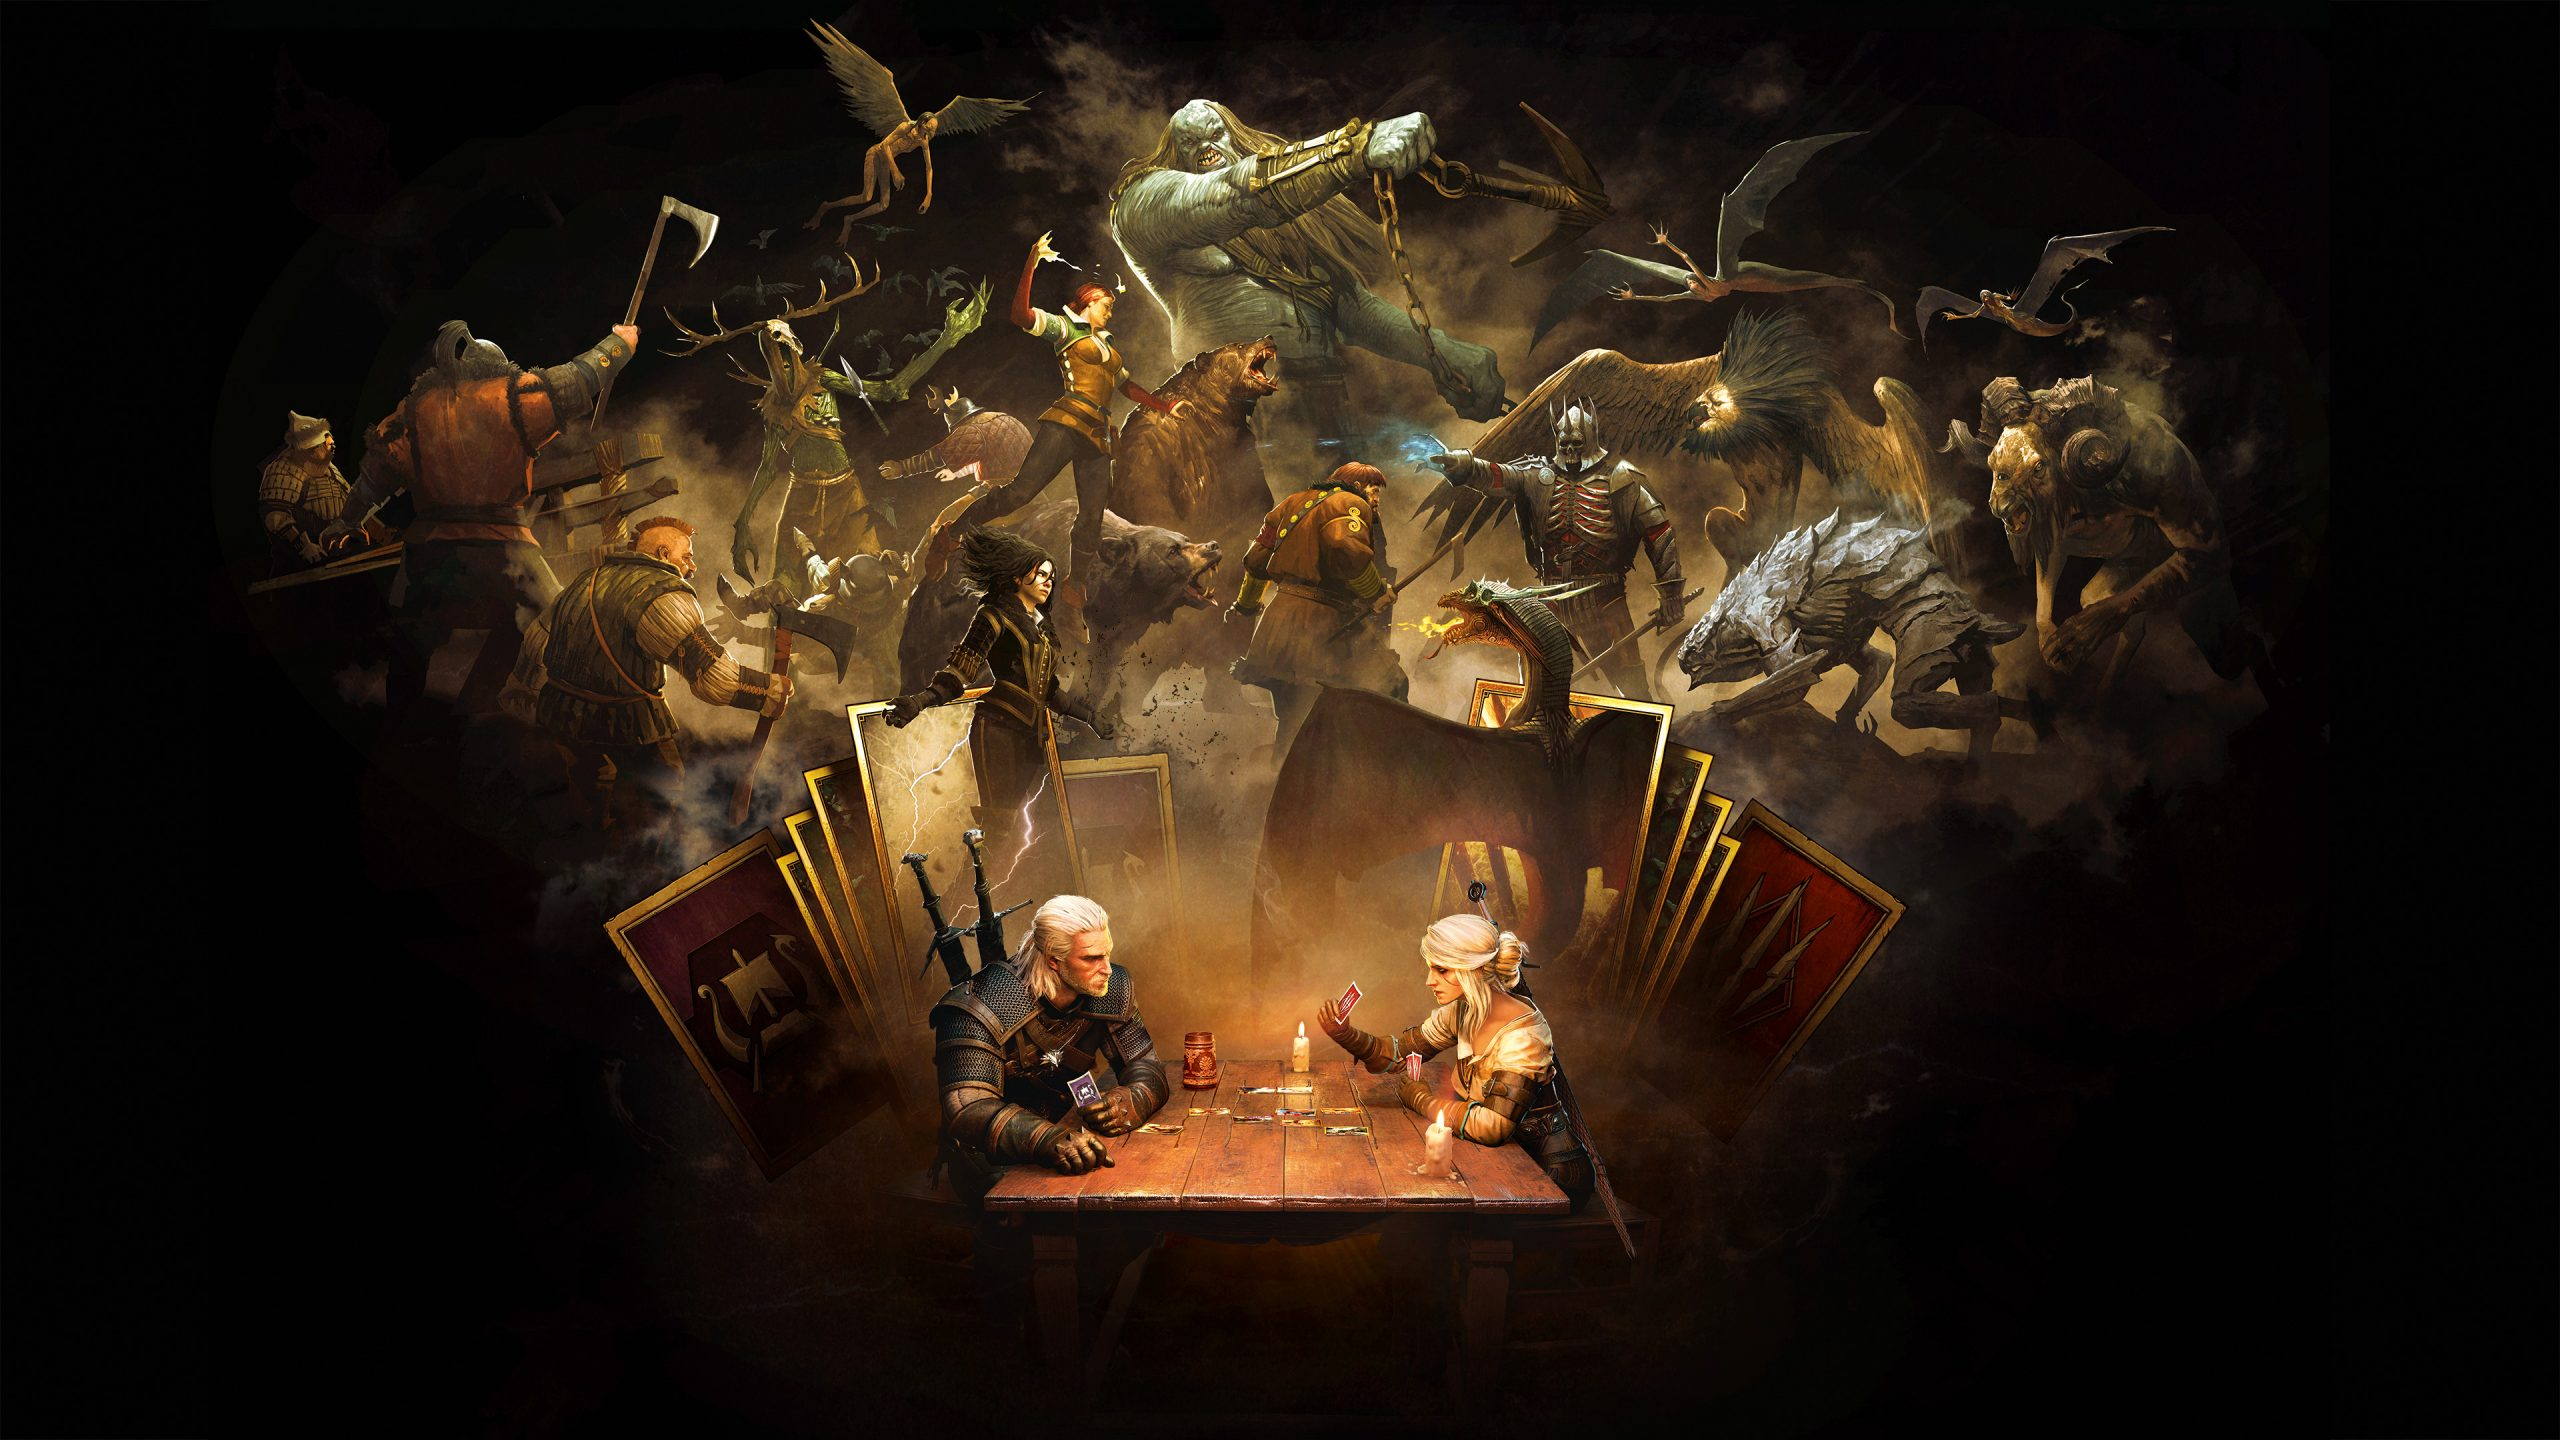 gwent witcher card game hd games 4k